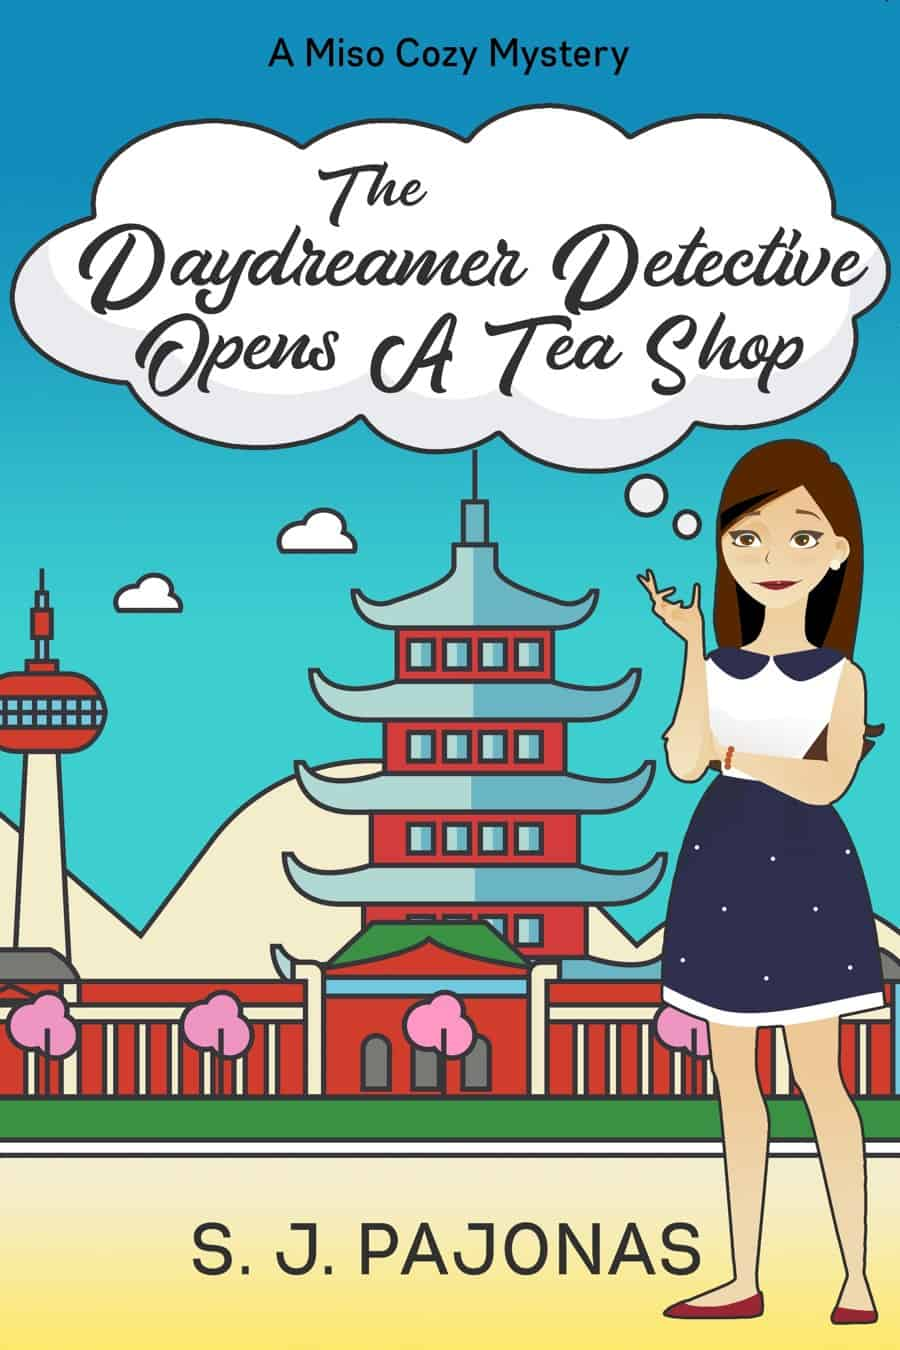 Cover, blurb, and information on the third book of the Miso Cozy Mysteries series, THE DAYDREAMER DETECTIVE OPENS A TEA SHOP.